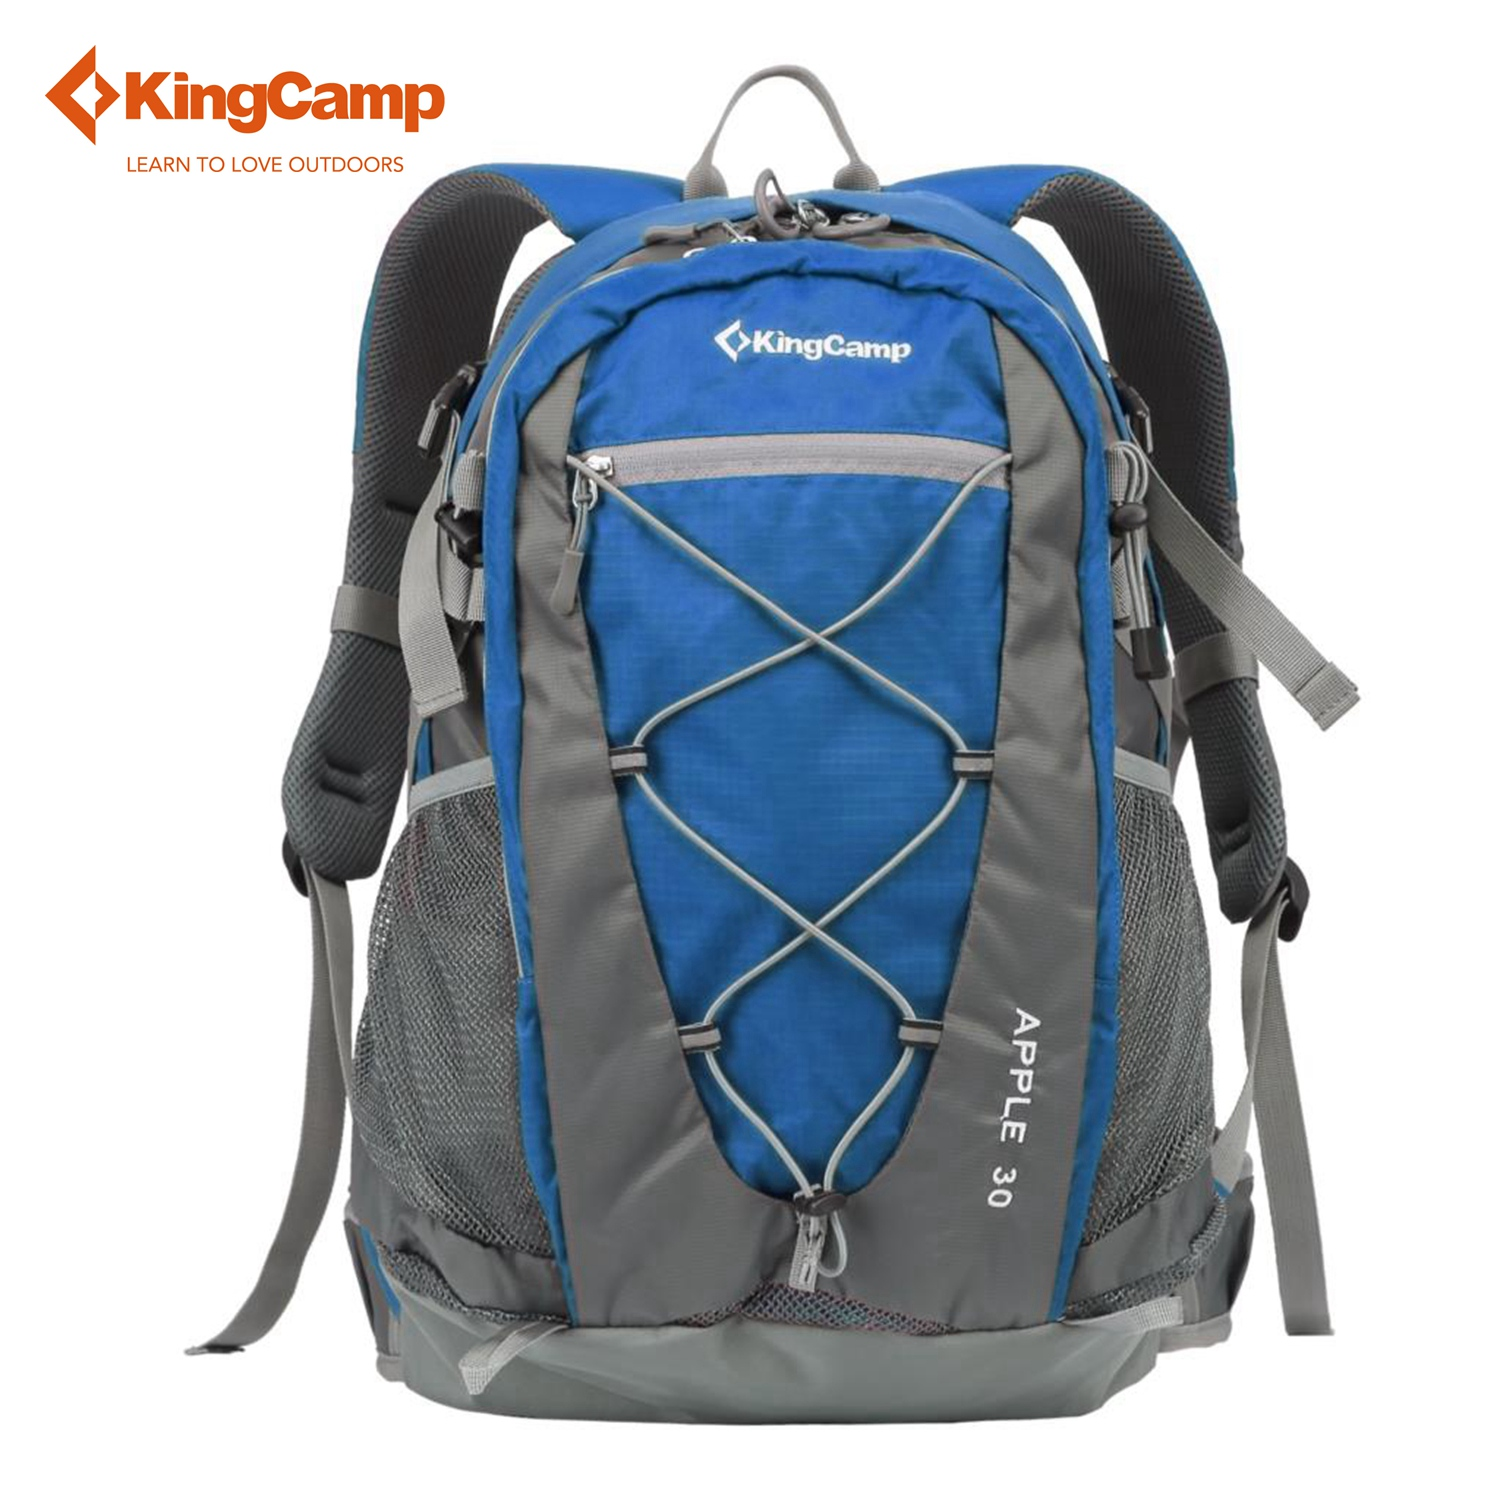 KingCamp Camping Bag Outdoor Sport Bag Waterproof 30L Outdoor Hiking Climbing Travelling Backpack kingcamp moon 30